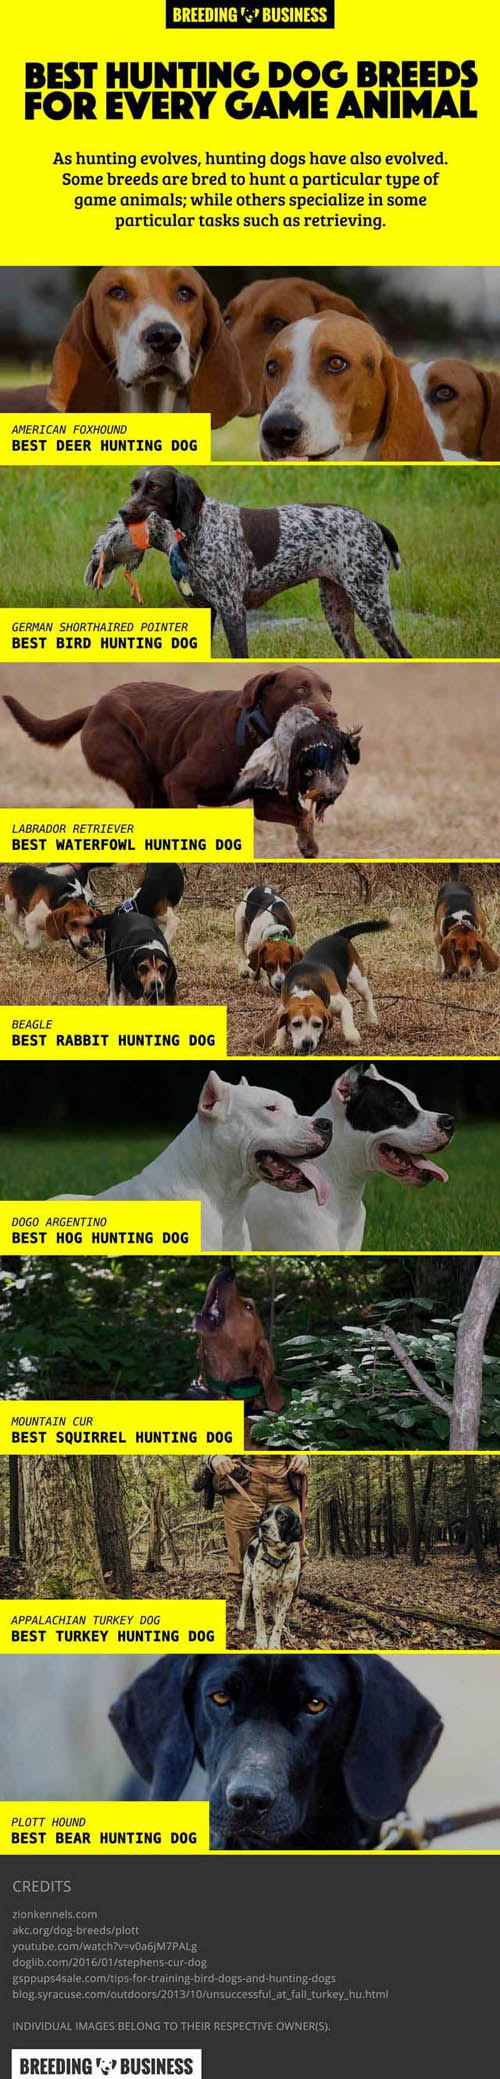 BEST HUNTING DOGS FOR EACH GAME